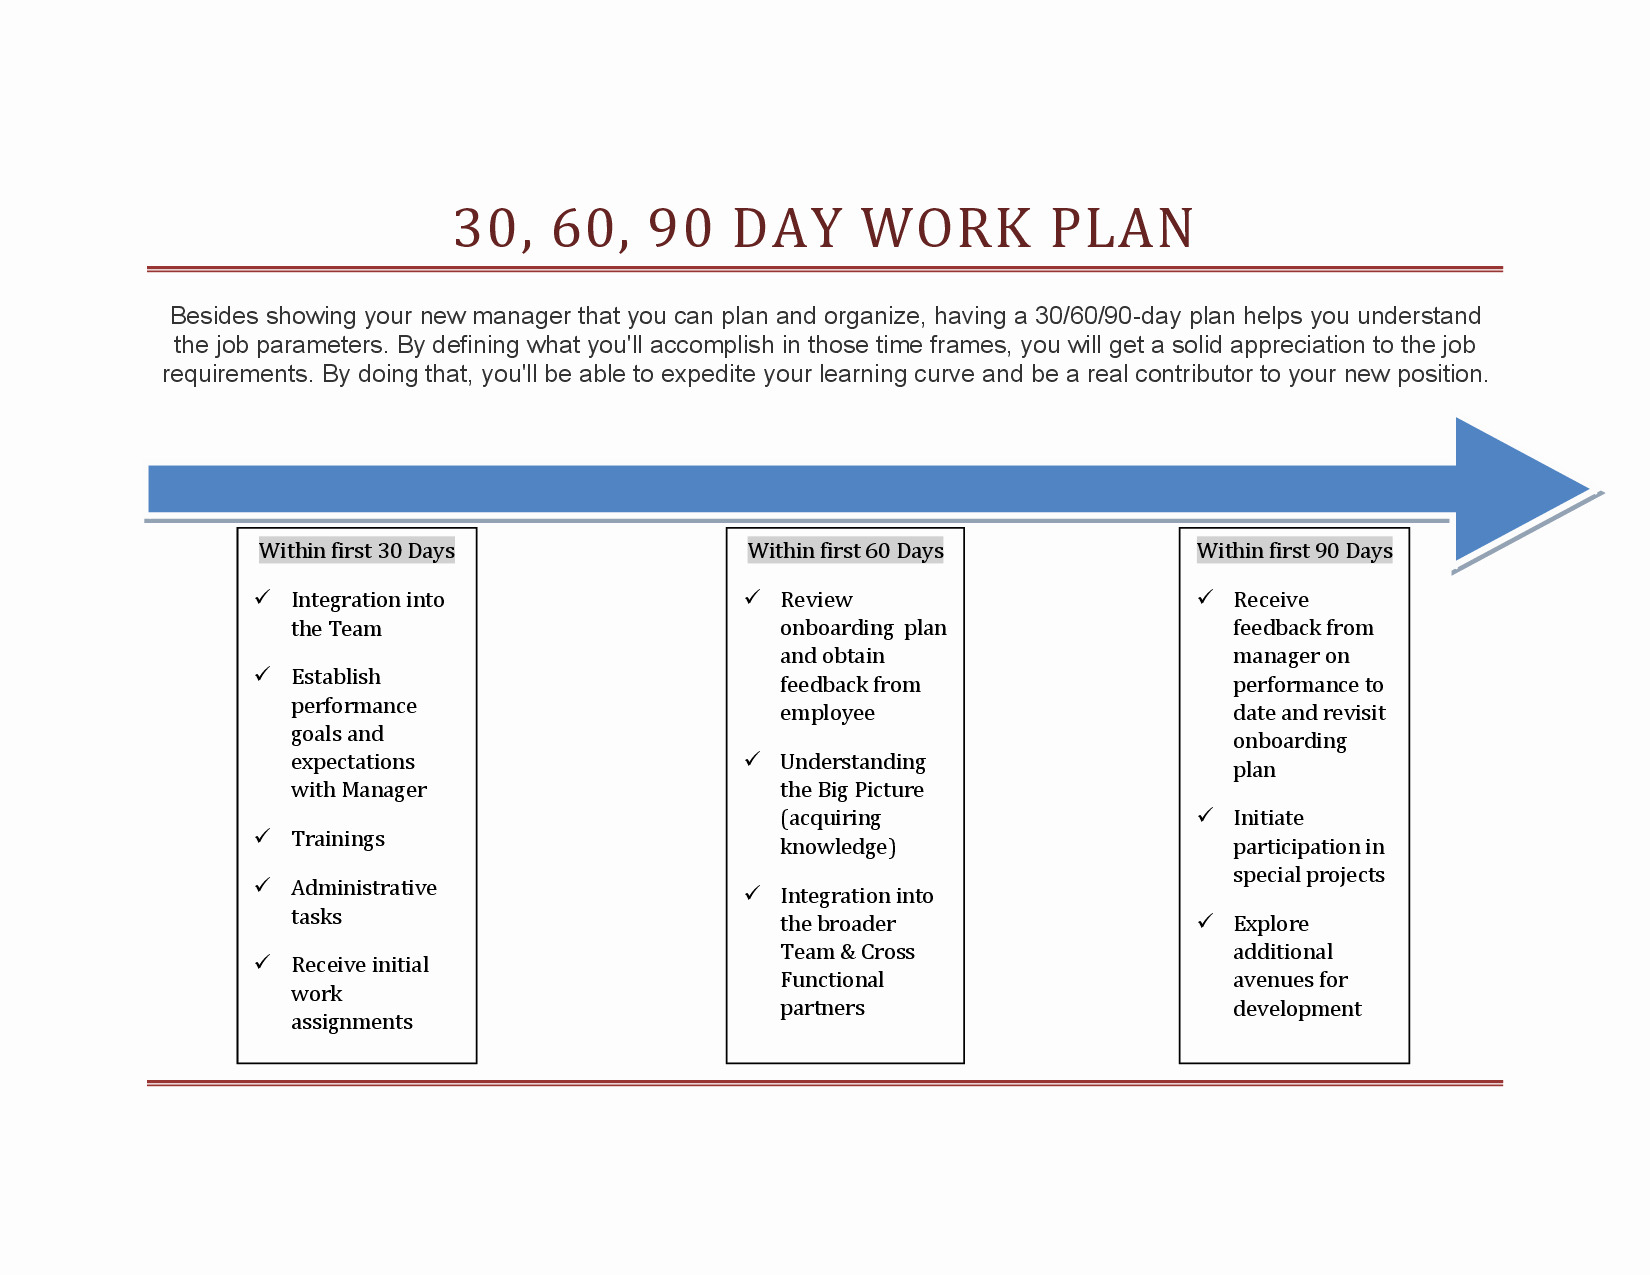 30 60 90 Action Plan Luxury 30 60 90 Days Plan New Job Marketing Google Search